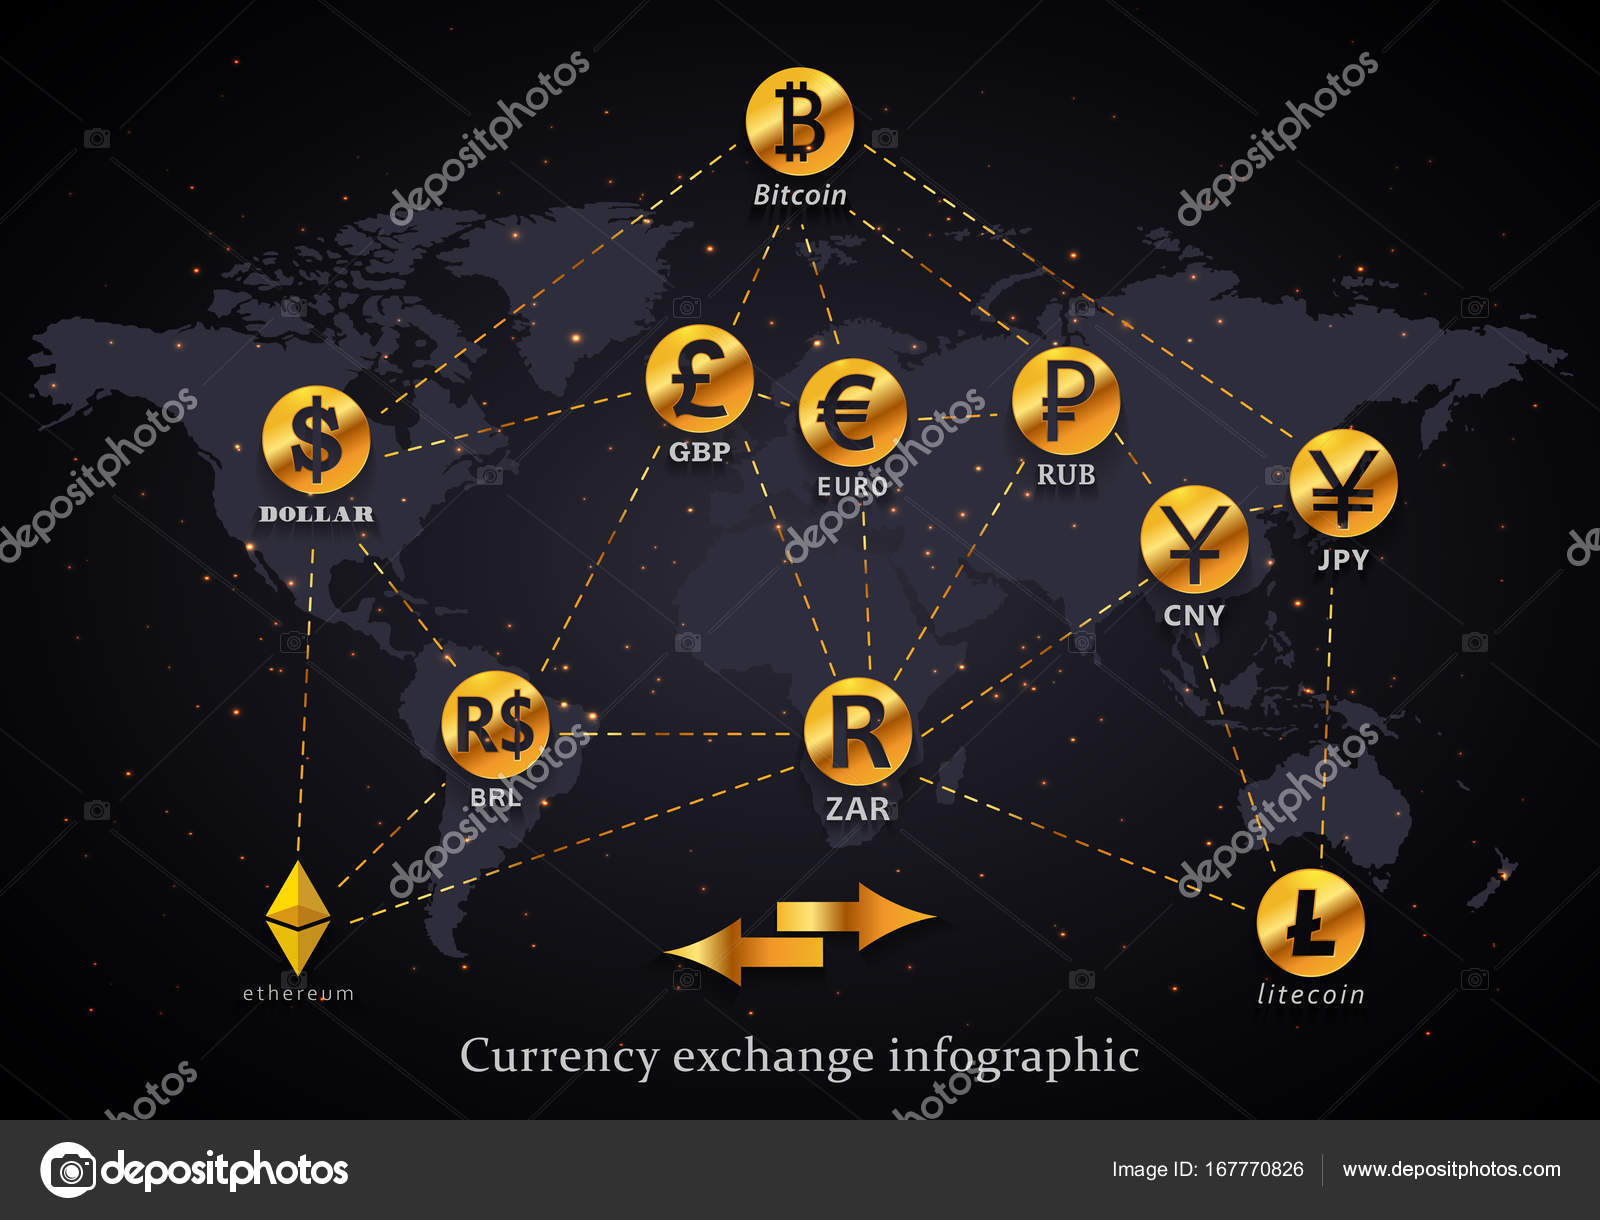 Currency exchange world map infographic with bitcoin ethereum currency exchange world map infographic with bitcoin ethereum litecoin dollar euro ruble yen yuan real pound and rand symbols posted inside biocorpaavc Images